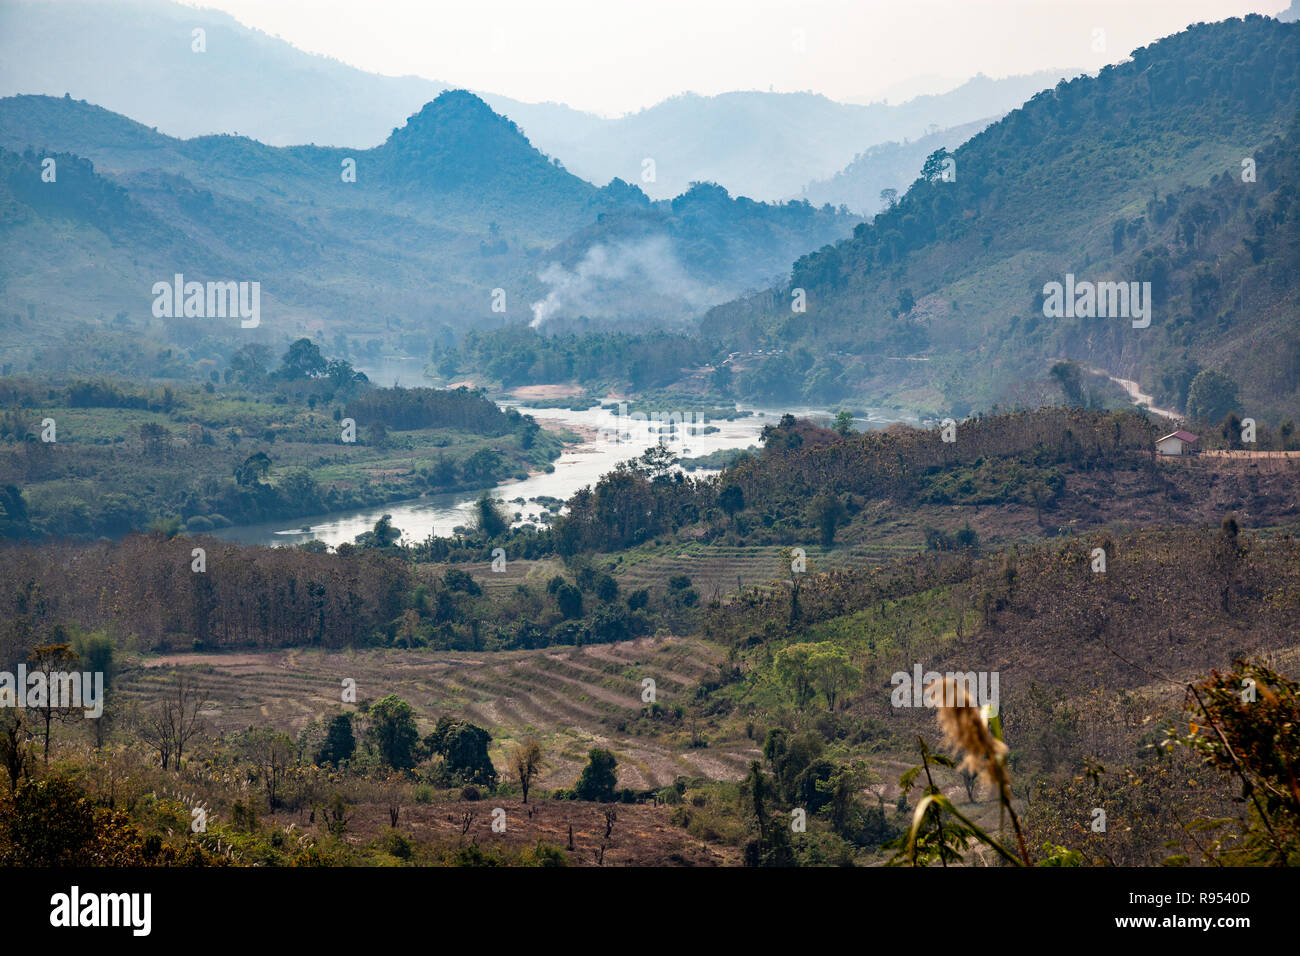 By a misty morning, the Ou river - a tributary of the Mekong - between Luang Prabang and Nong Khiaw (Laos - Asia) . Stock Photo